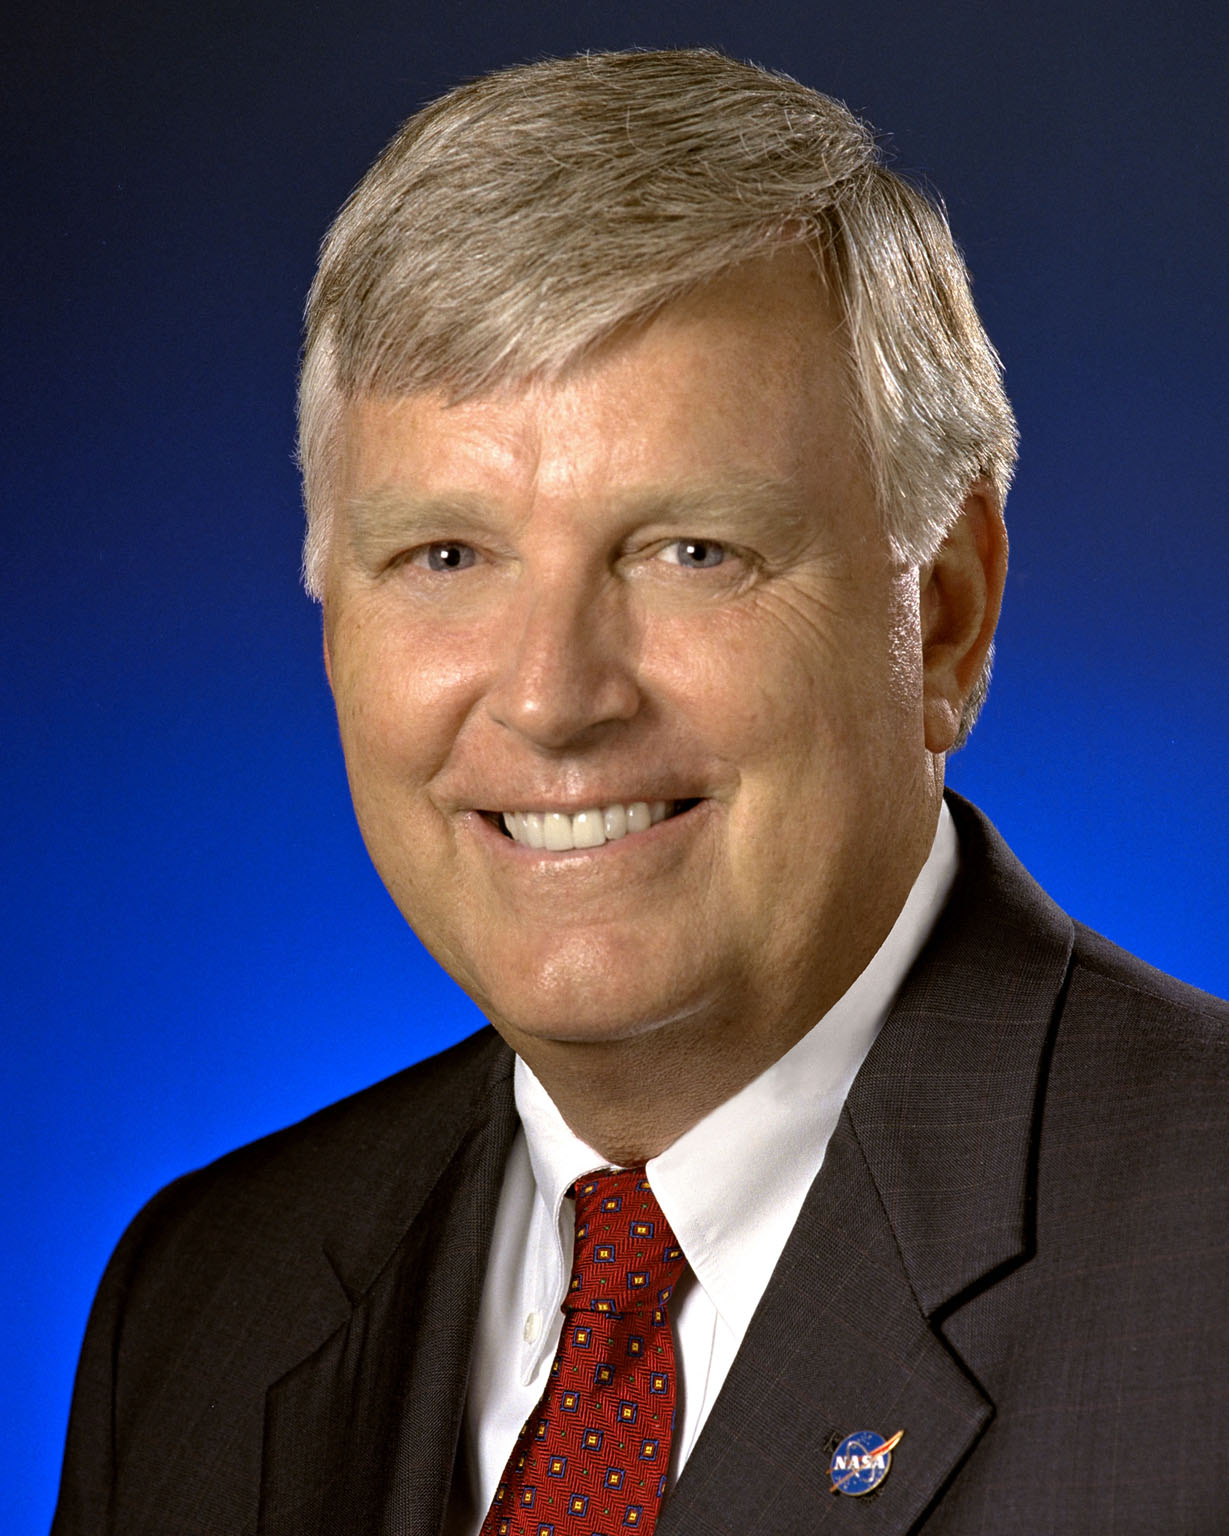 KENNEDY SPACE CENTER, FLA. - Official portrait of James W. Kennedy, the director of the NASA Kennedy Space Center in Florida from August 2003 to January 2007.